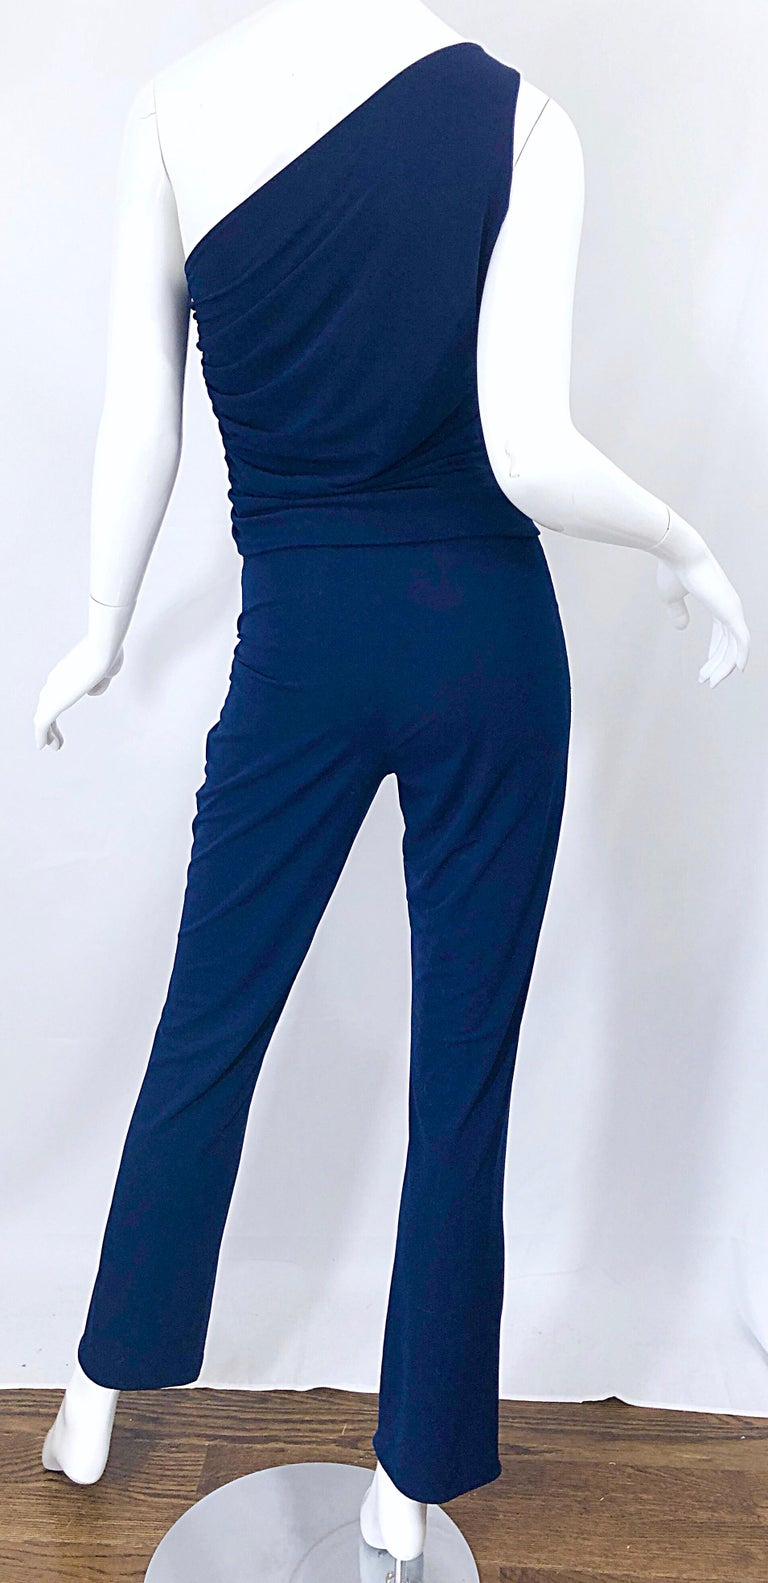 Vintage Norma Kamali OMO 1980s Navy Blue One Shoulder 80s Top and Pants Jumpsuit For Sale 5